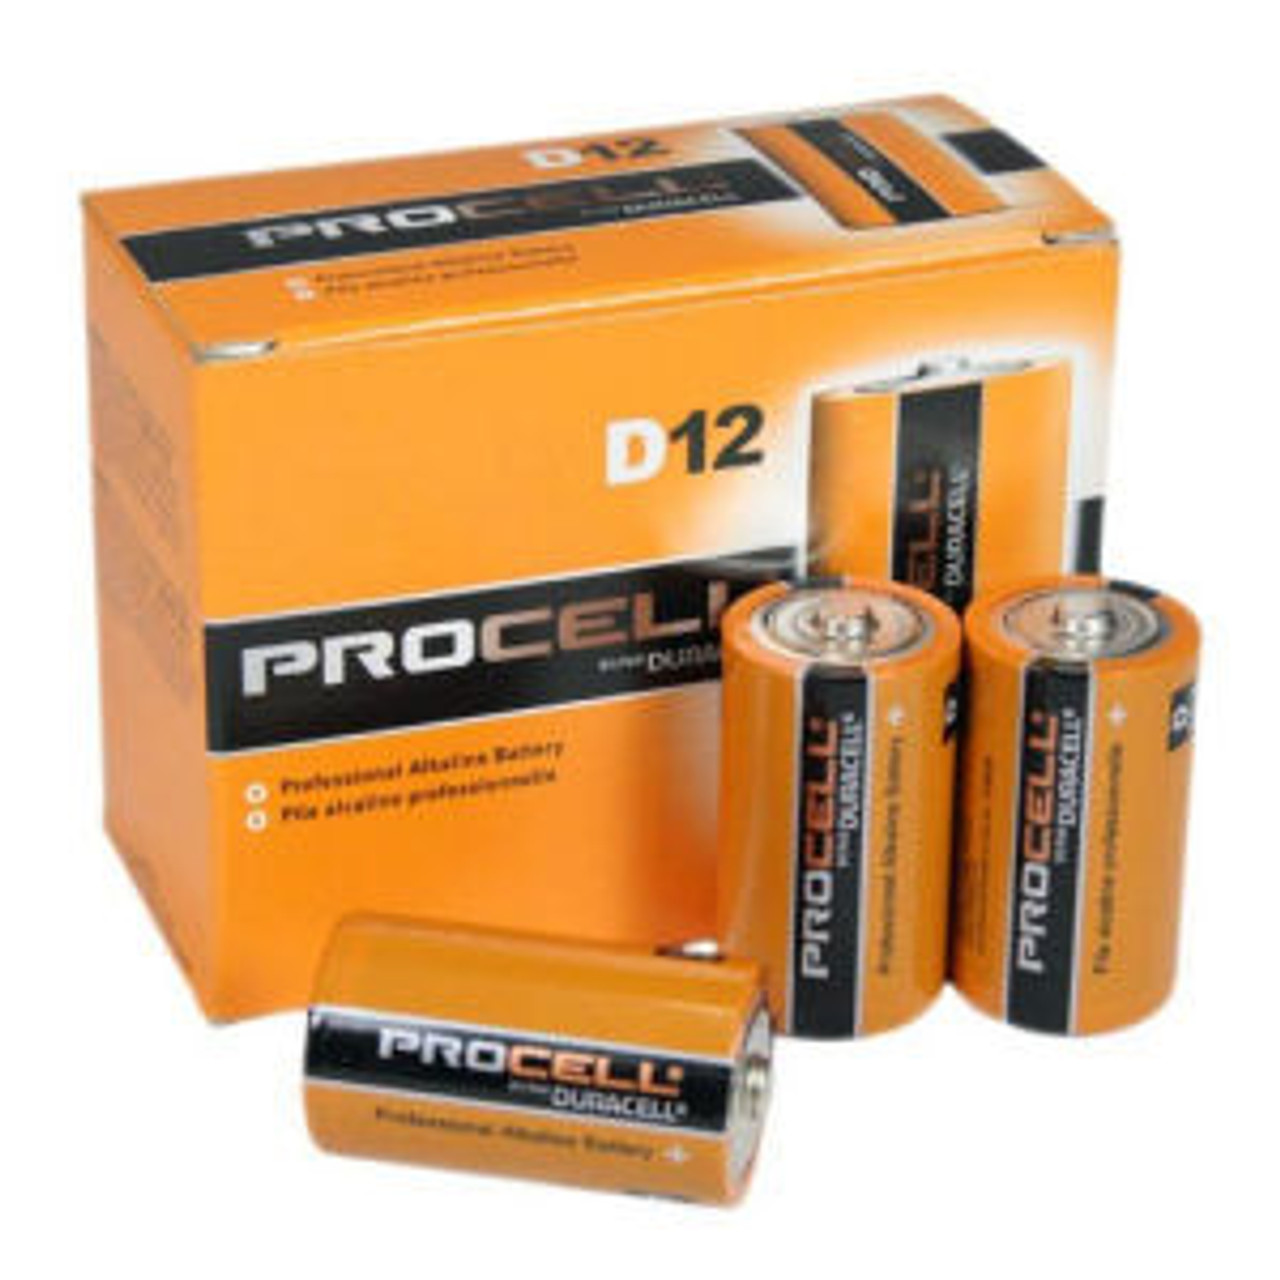 Duracell Procell D Size Alkaline Cells - Box of 12